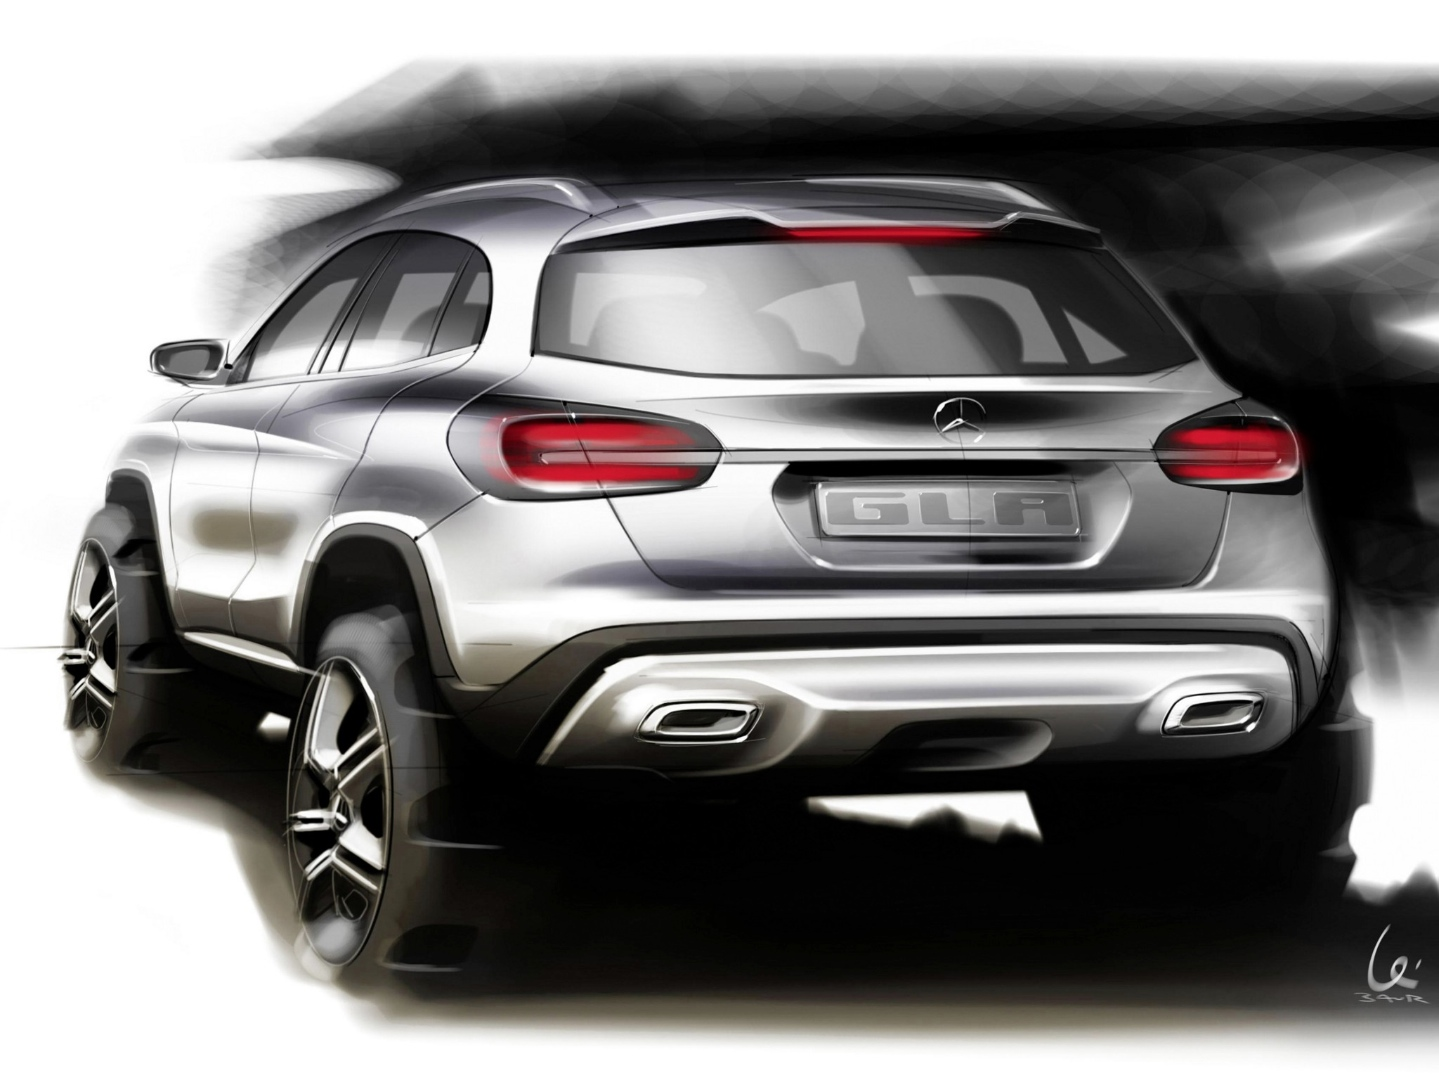 cargurus overview cars mercedes gla suv class pic small preview benz